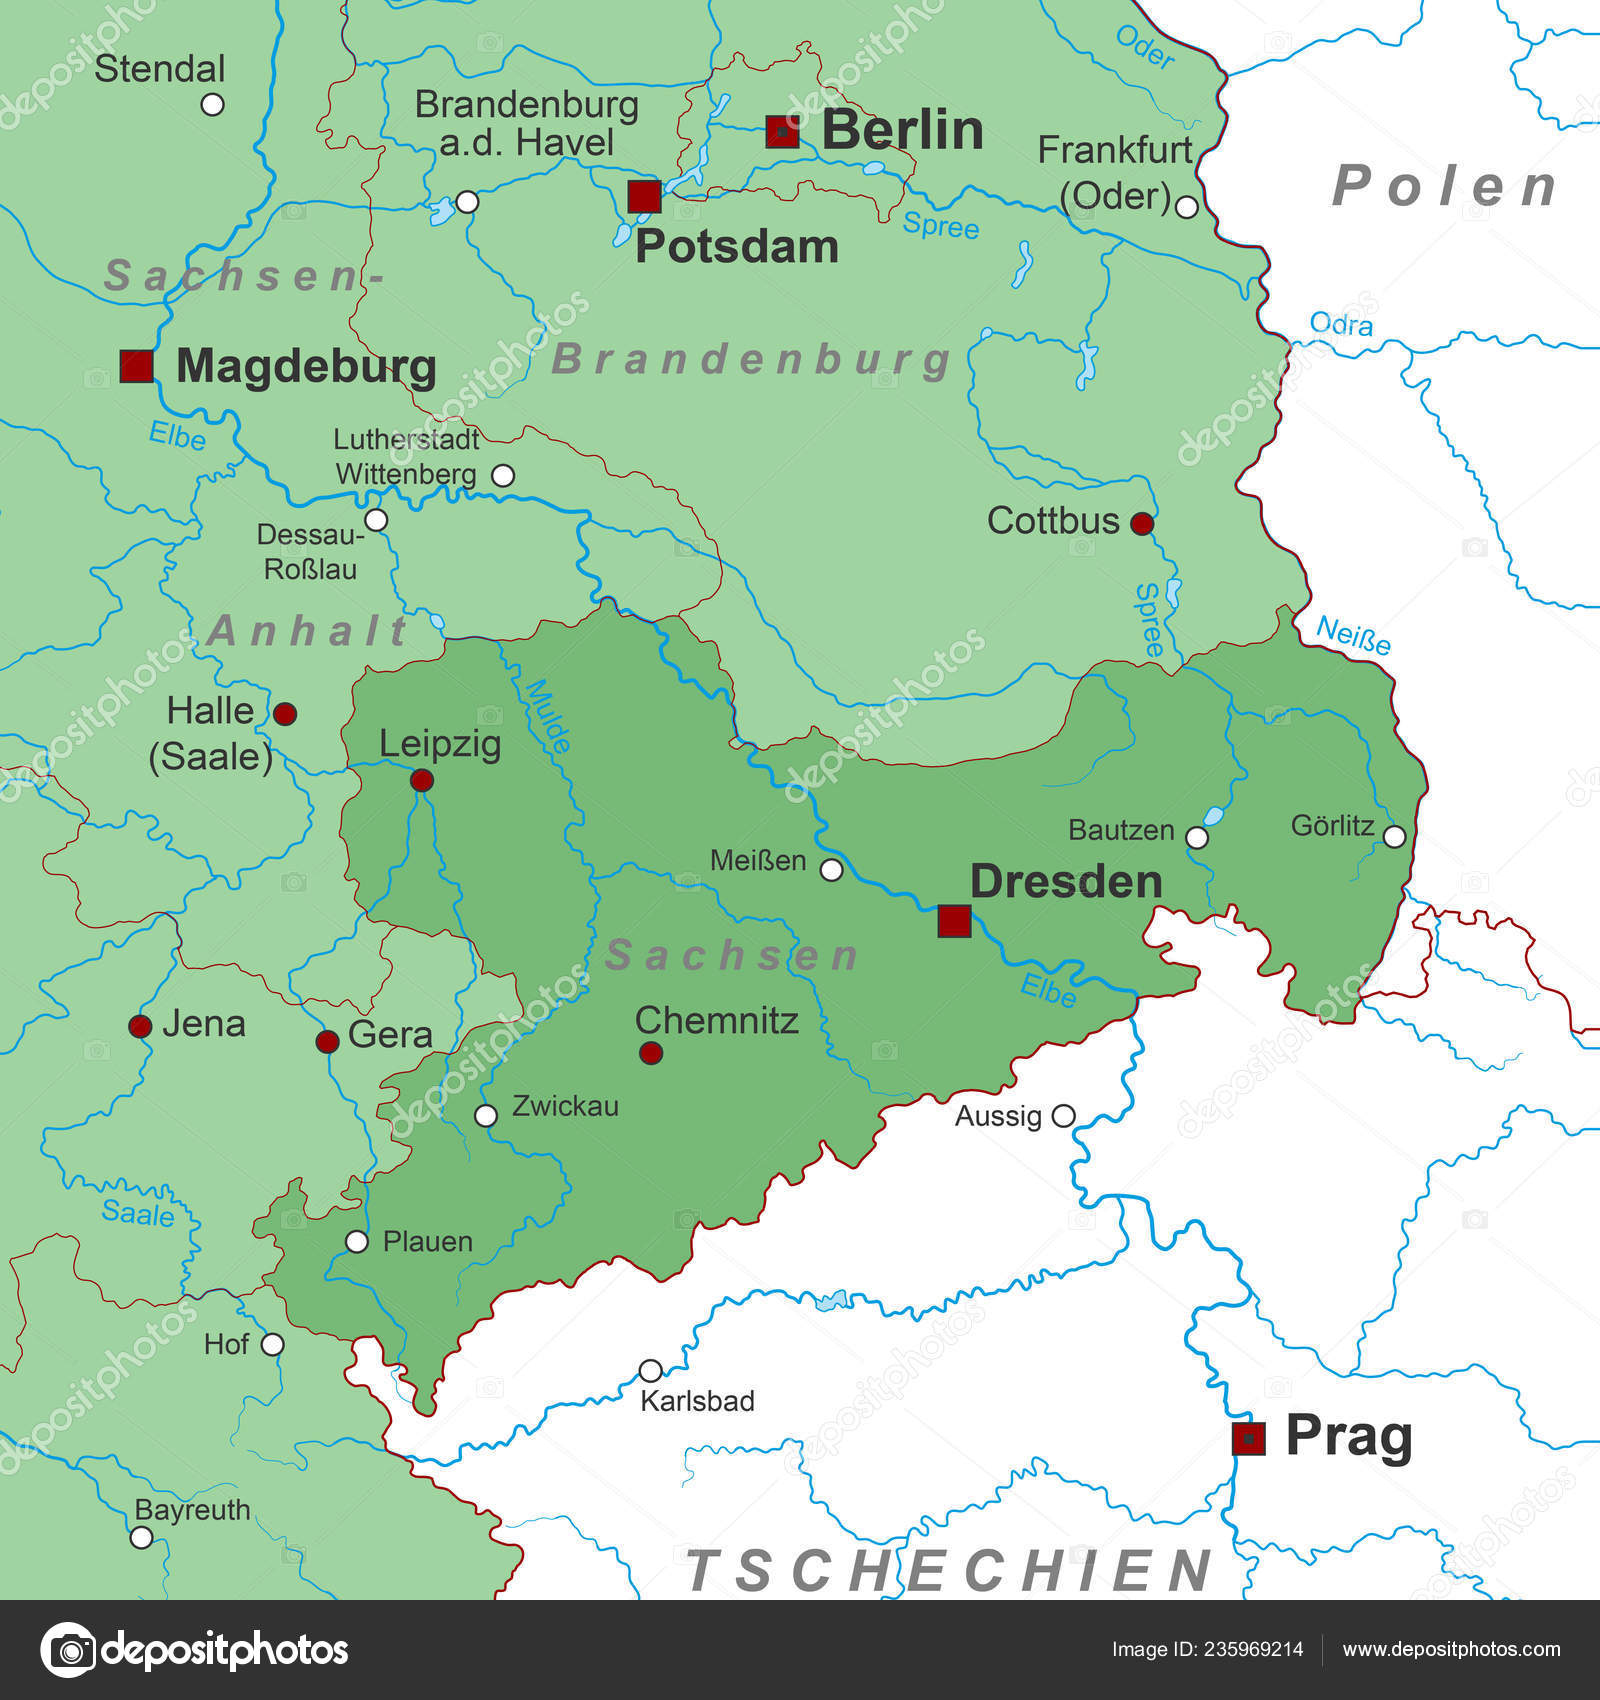 Sachsen Map Germany High Detailed Stock Vector C Ii Graphics